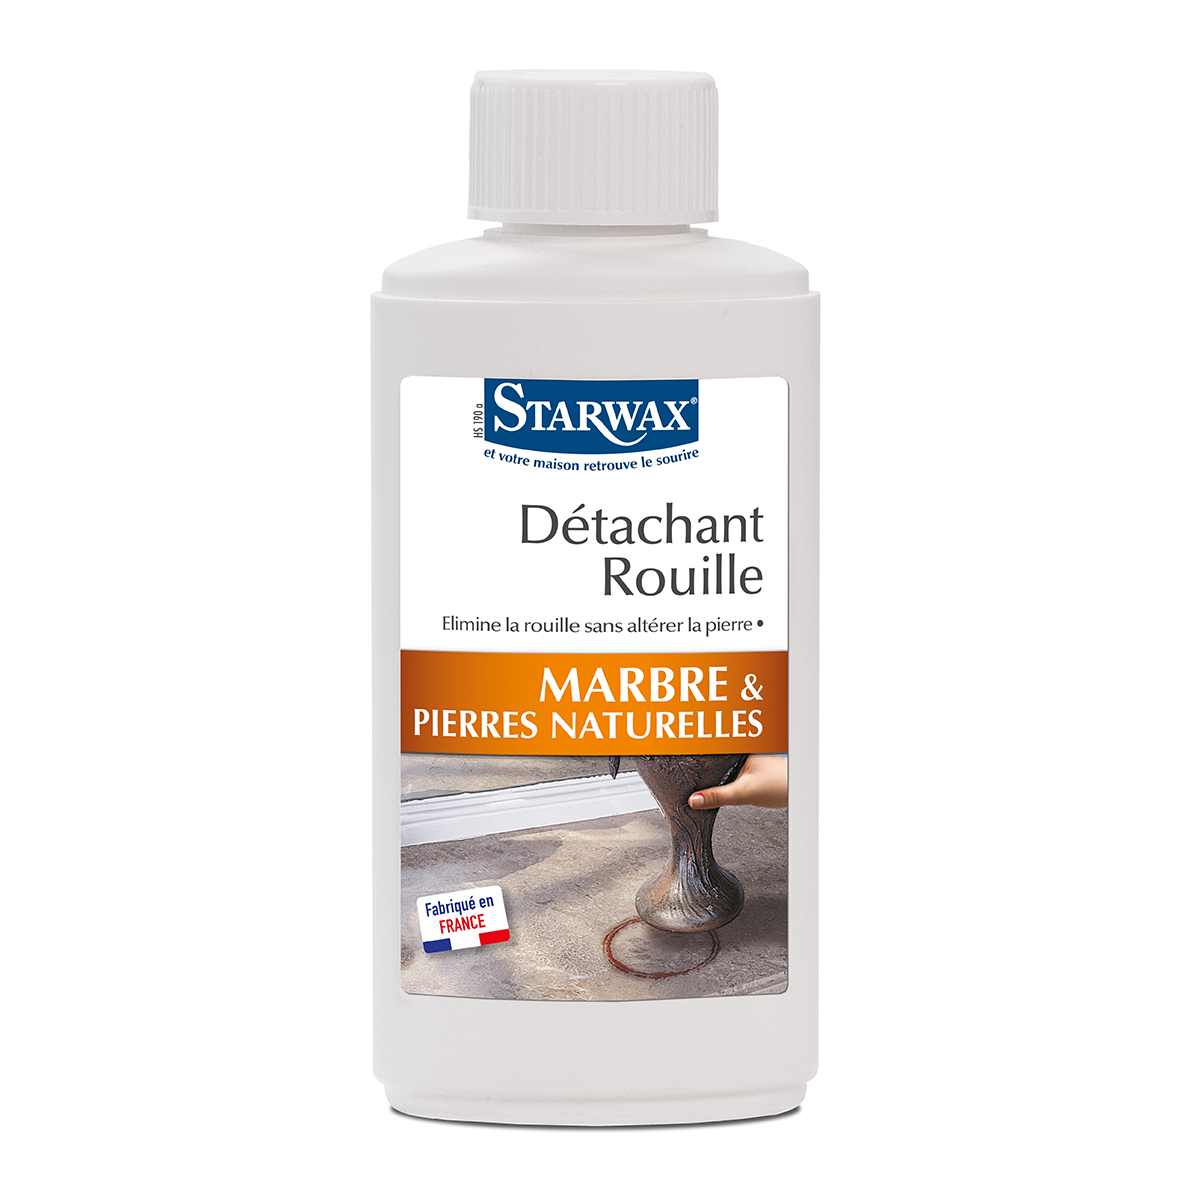 Rust stain remover for marble - Starwax